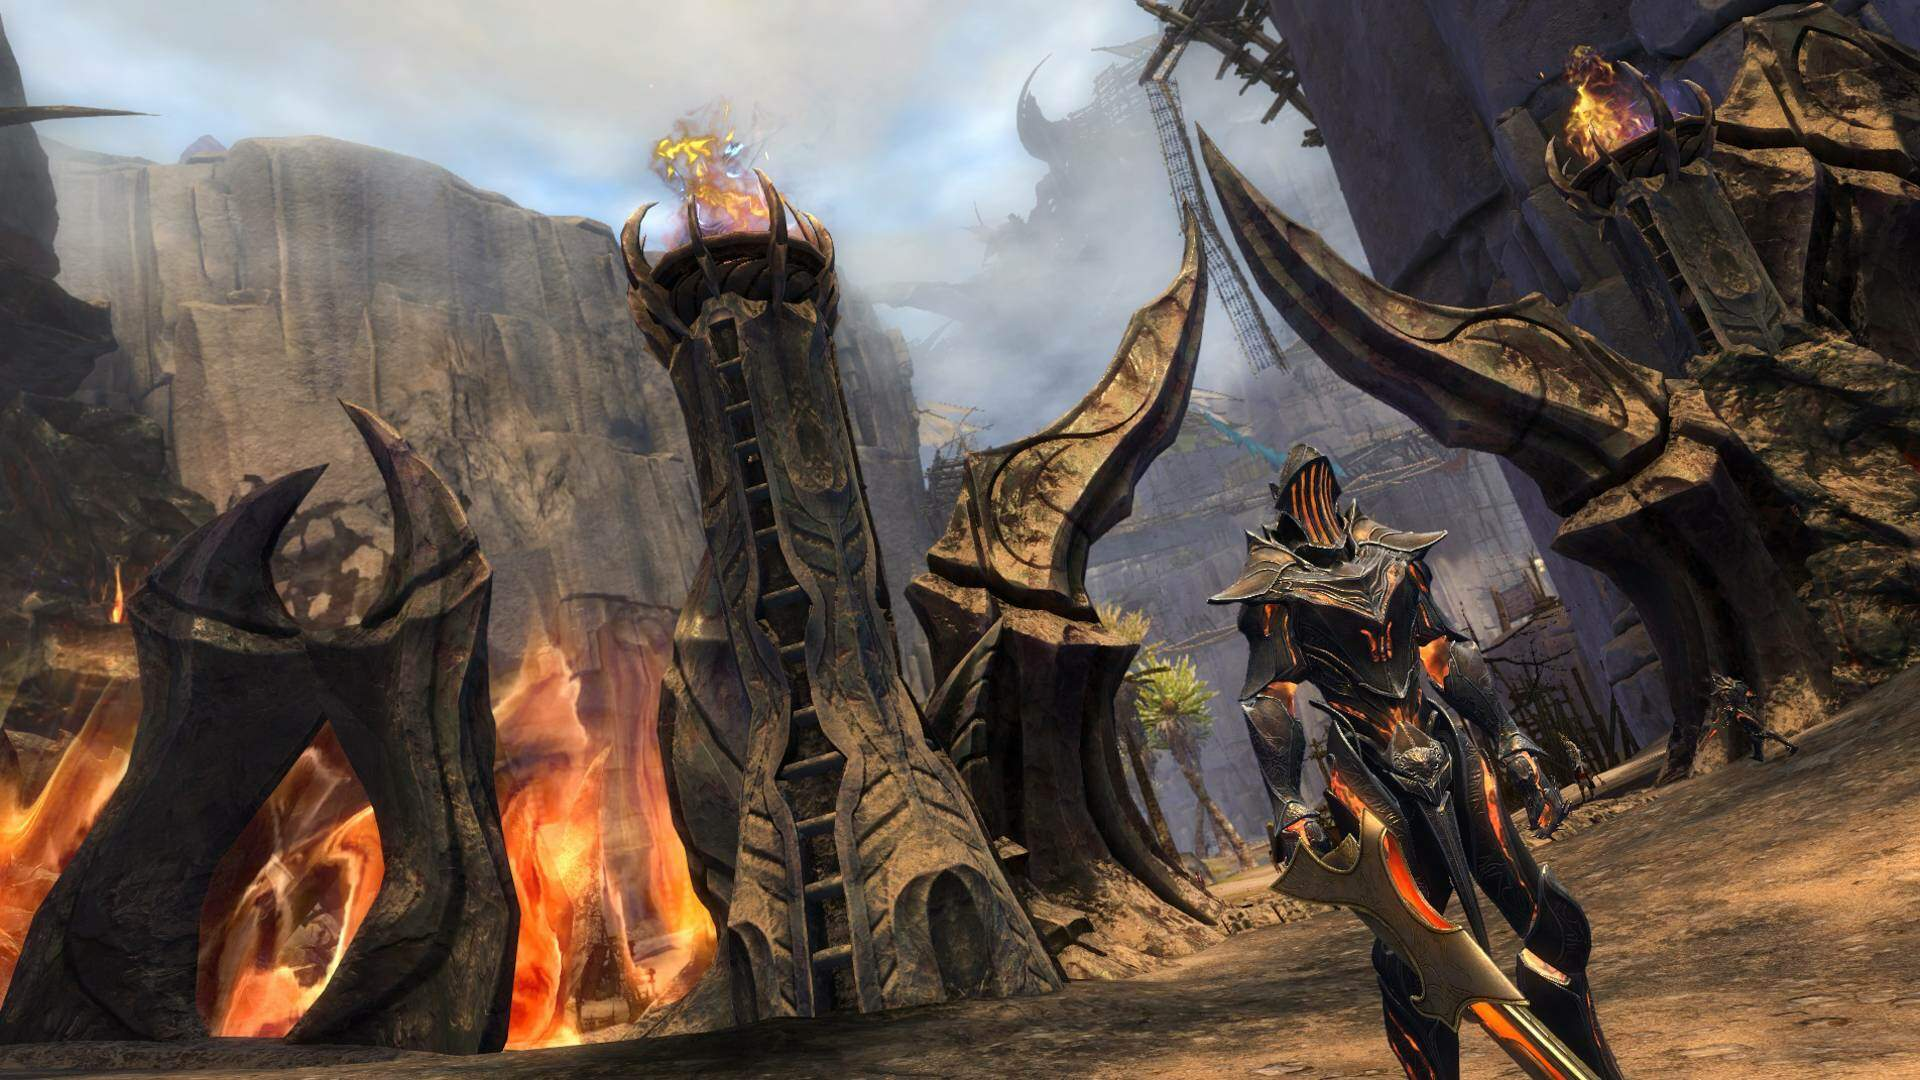 Guild Wars 2 Developer ArenaNet the Latest Studio to be Hit by Layoffs After Canceling Unannounced Projects